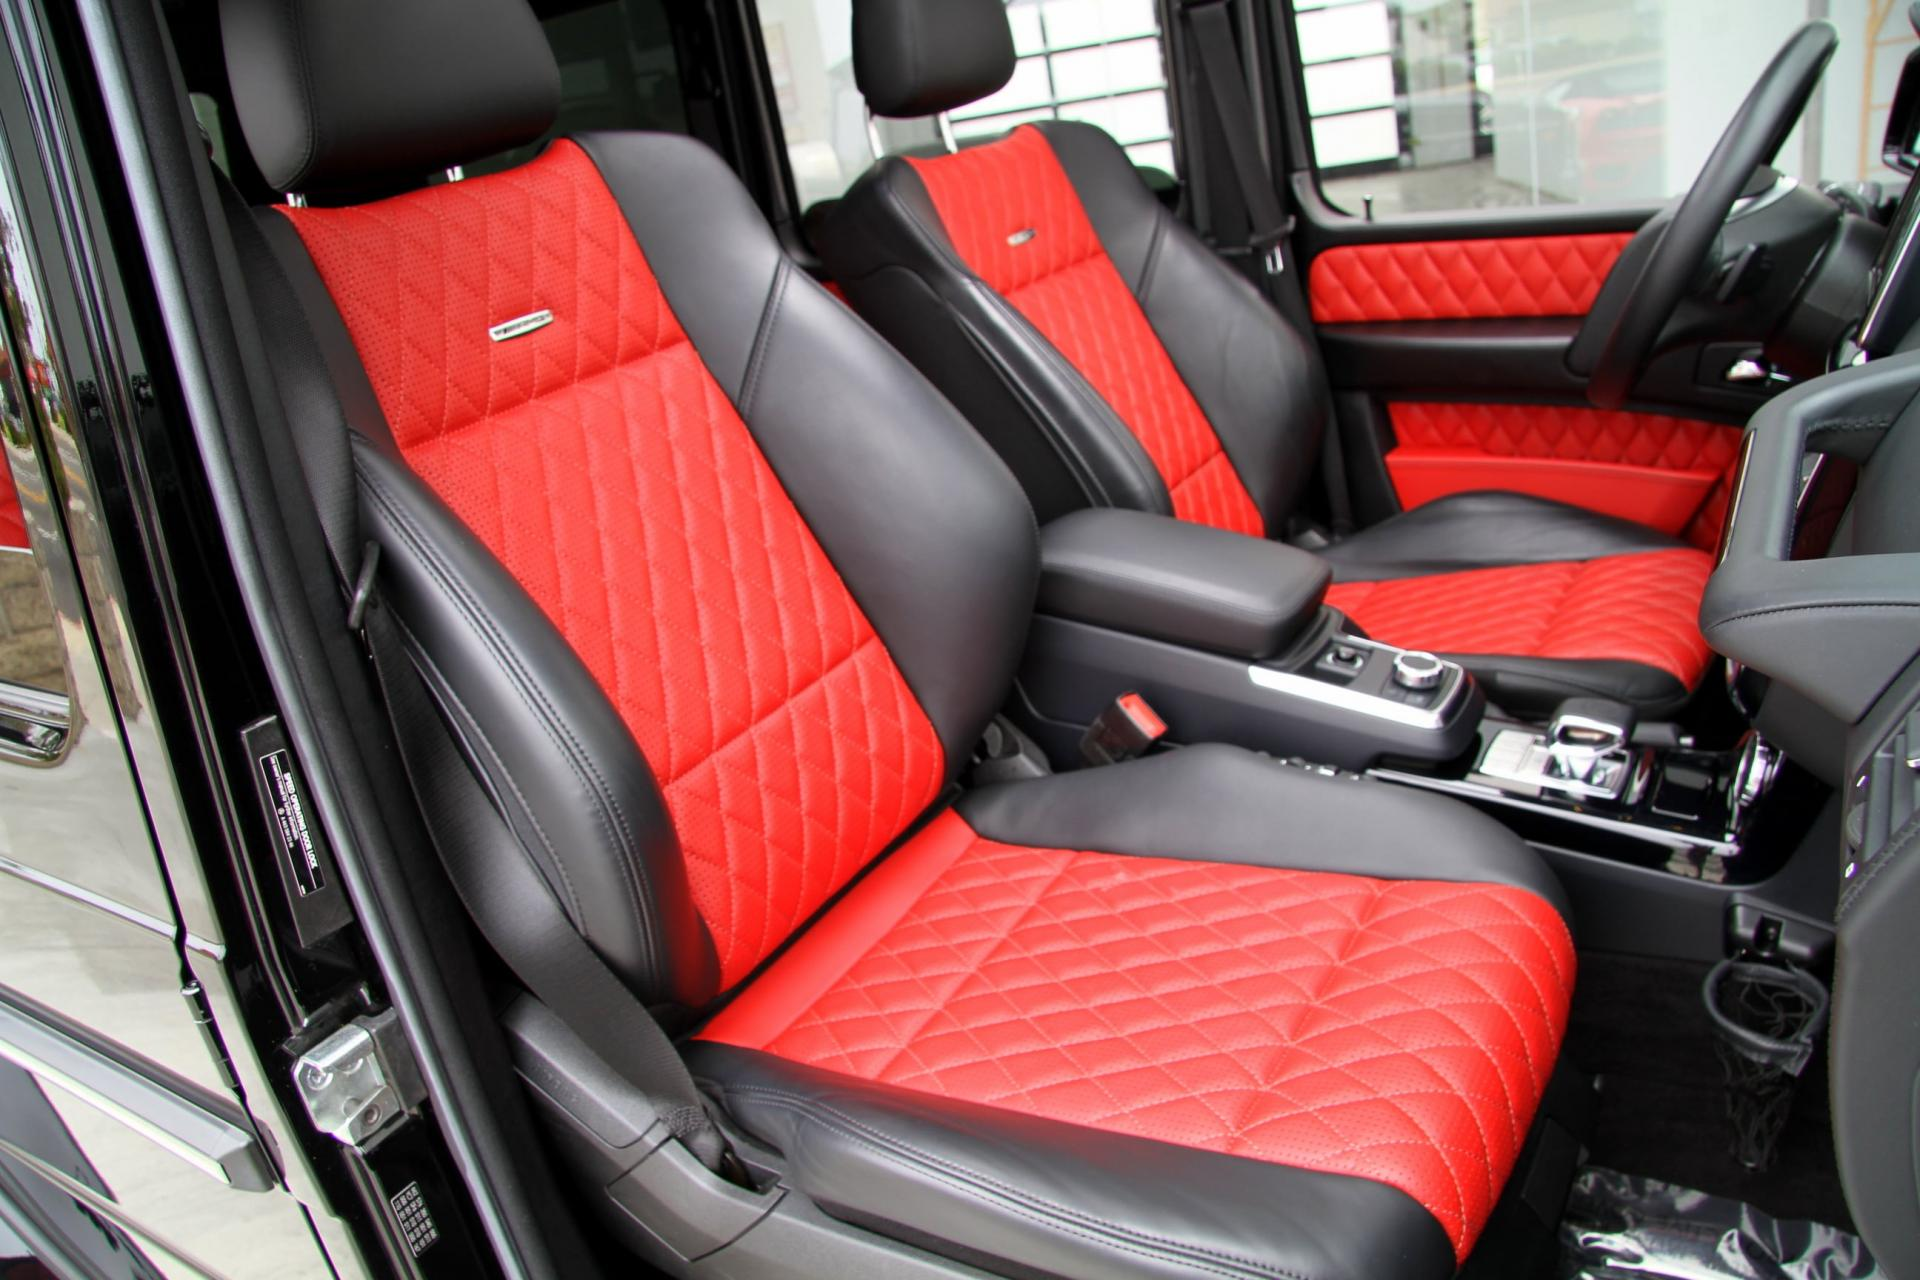 Mercedes Dealership Near Me >> 2015 Mercedes-Benz G63 AMG 4MATIC **Diamond Stitched Seats ** G 63 AMG Stock # 5854 for sale ...